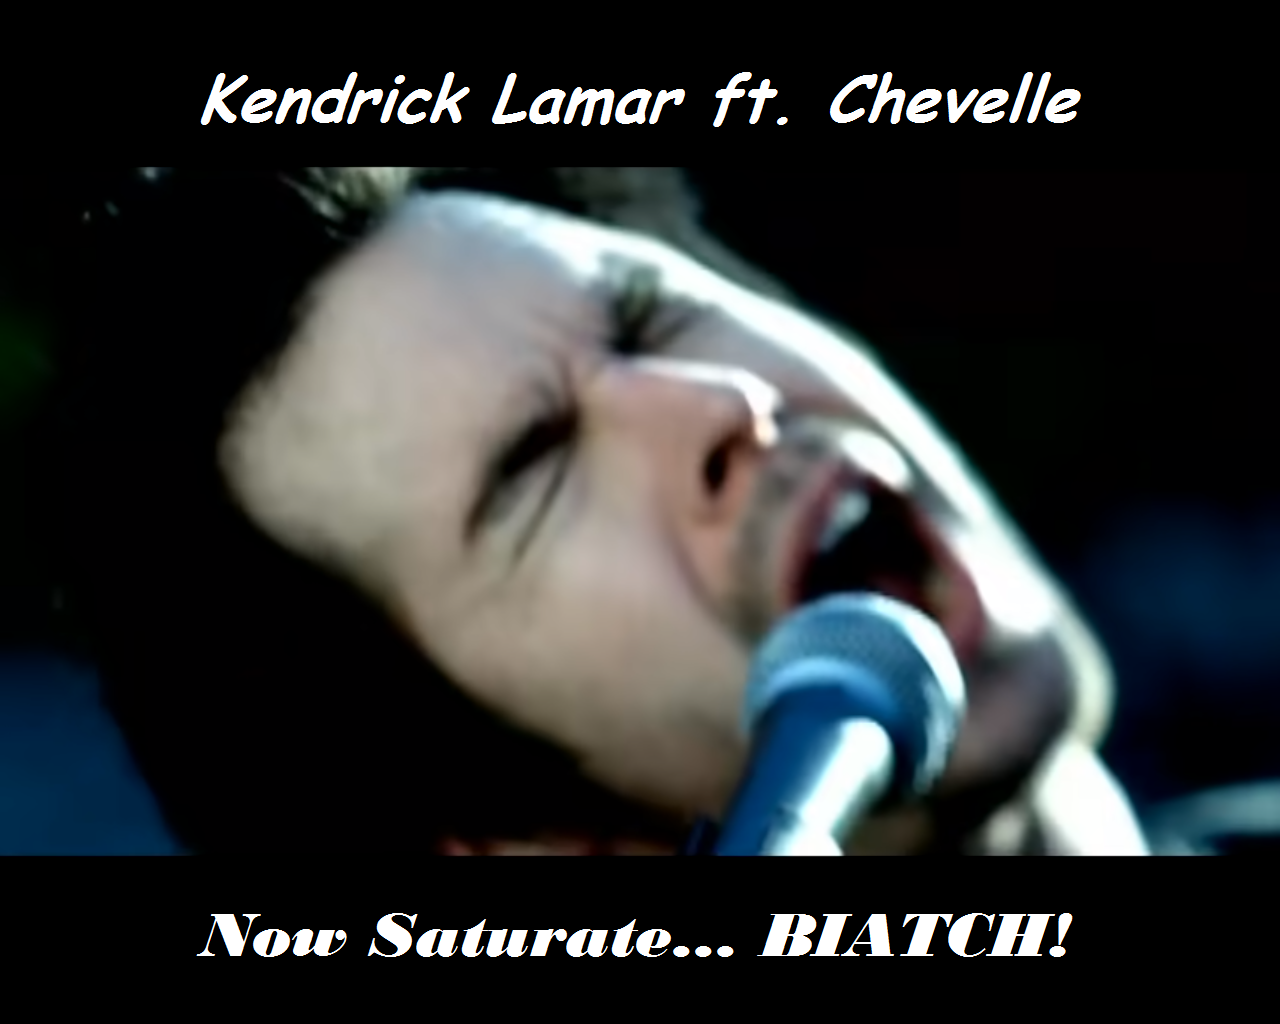 Now Saturate... BIATCH! (by GladiLord)